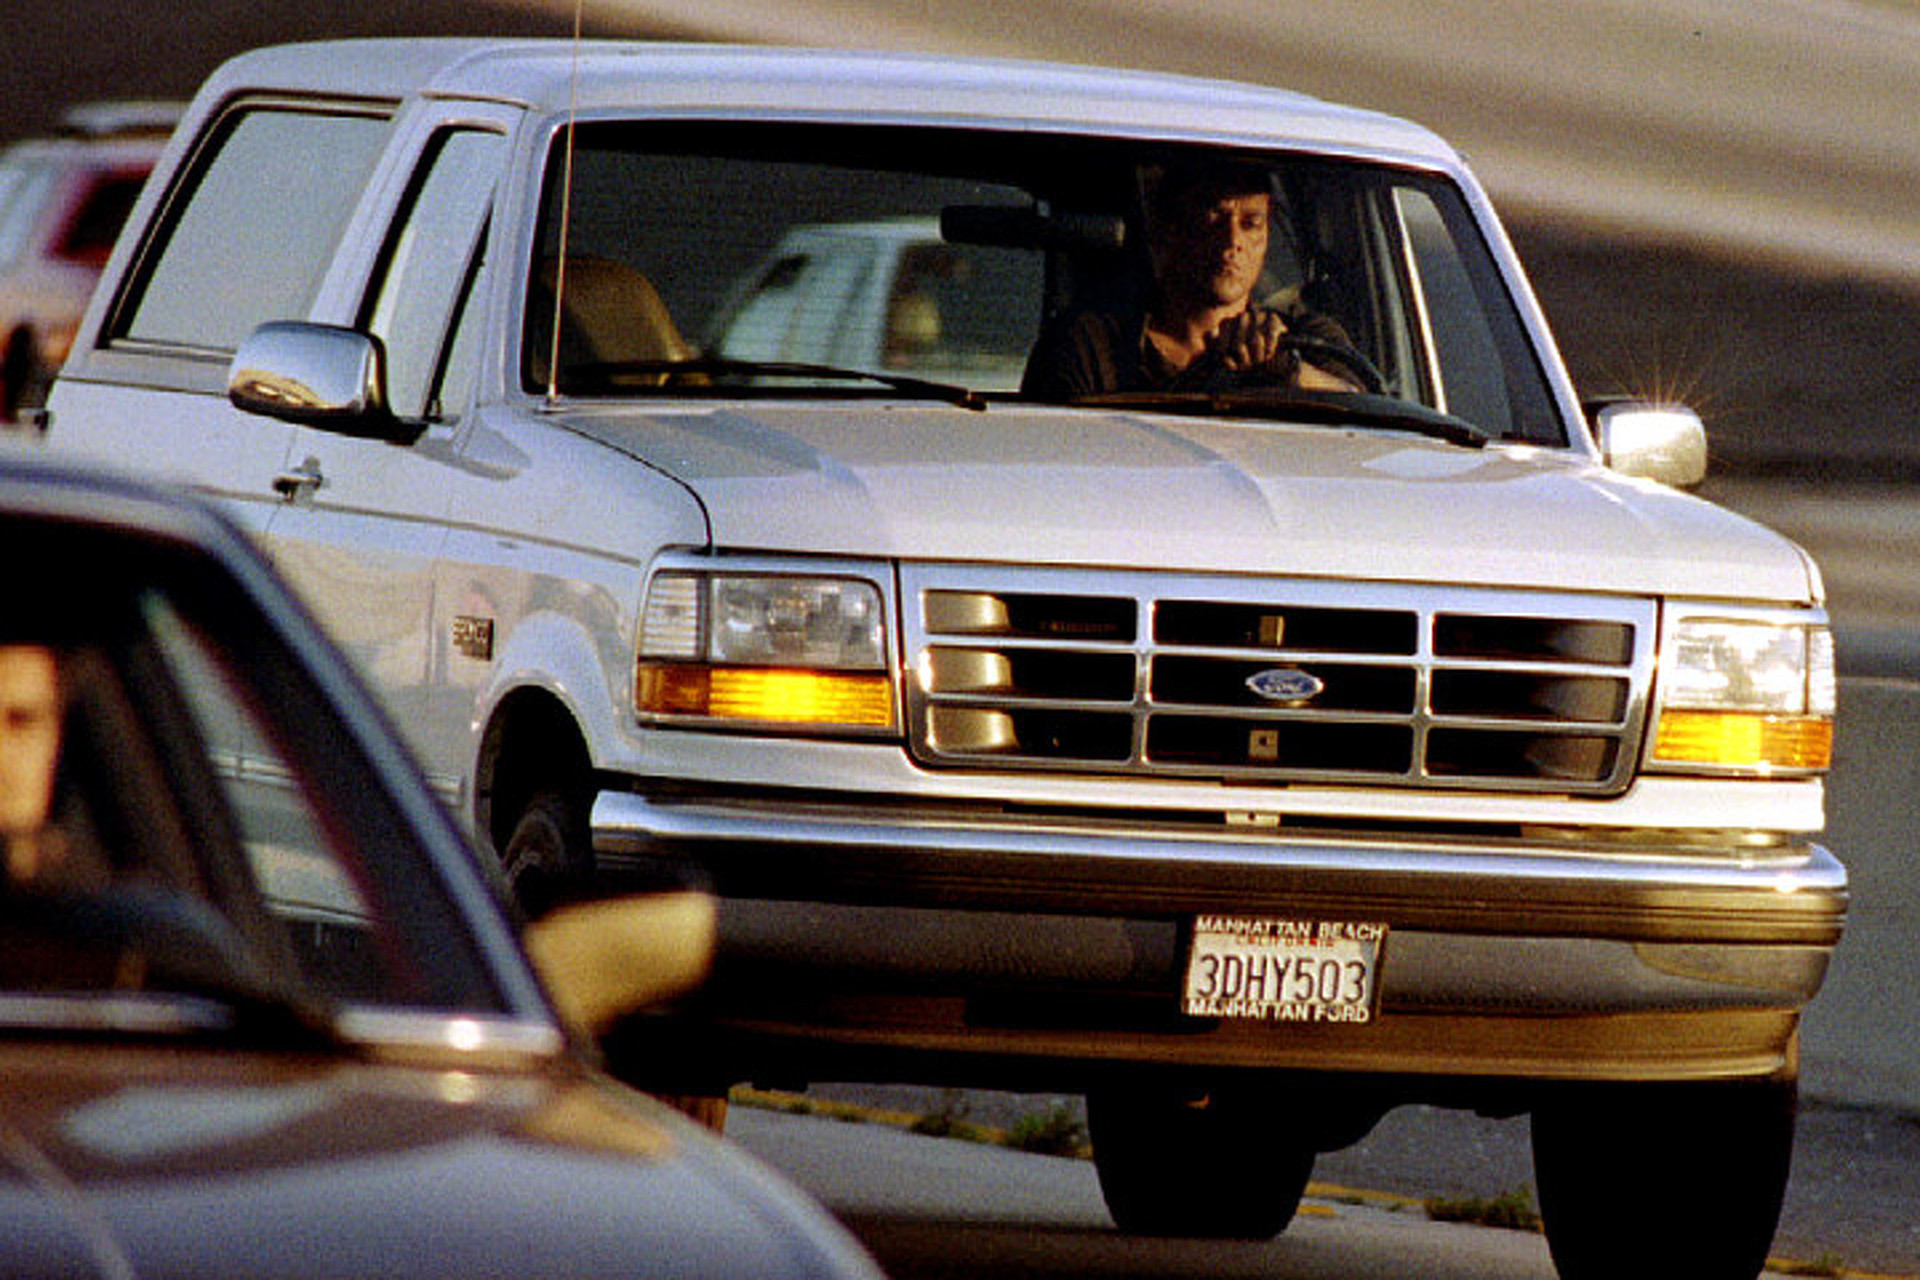 Was The Oj Simpson Trial To Blame For The Demise Of The Ford Bronco